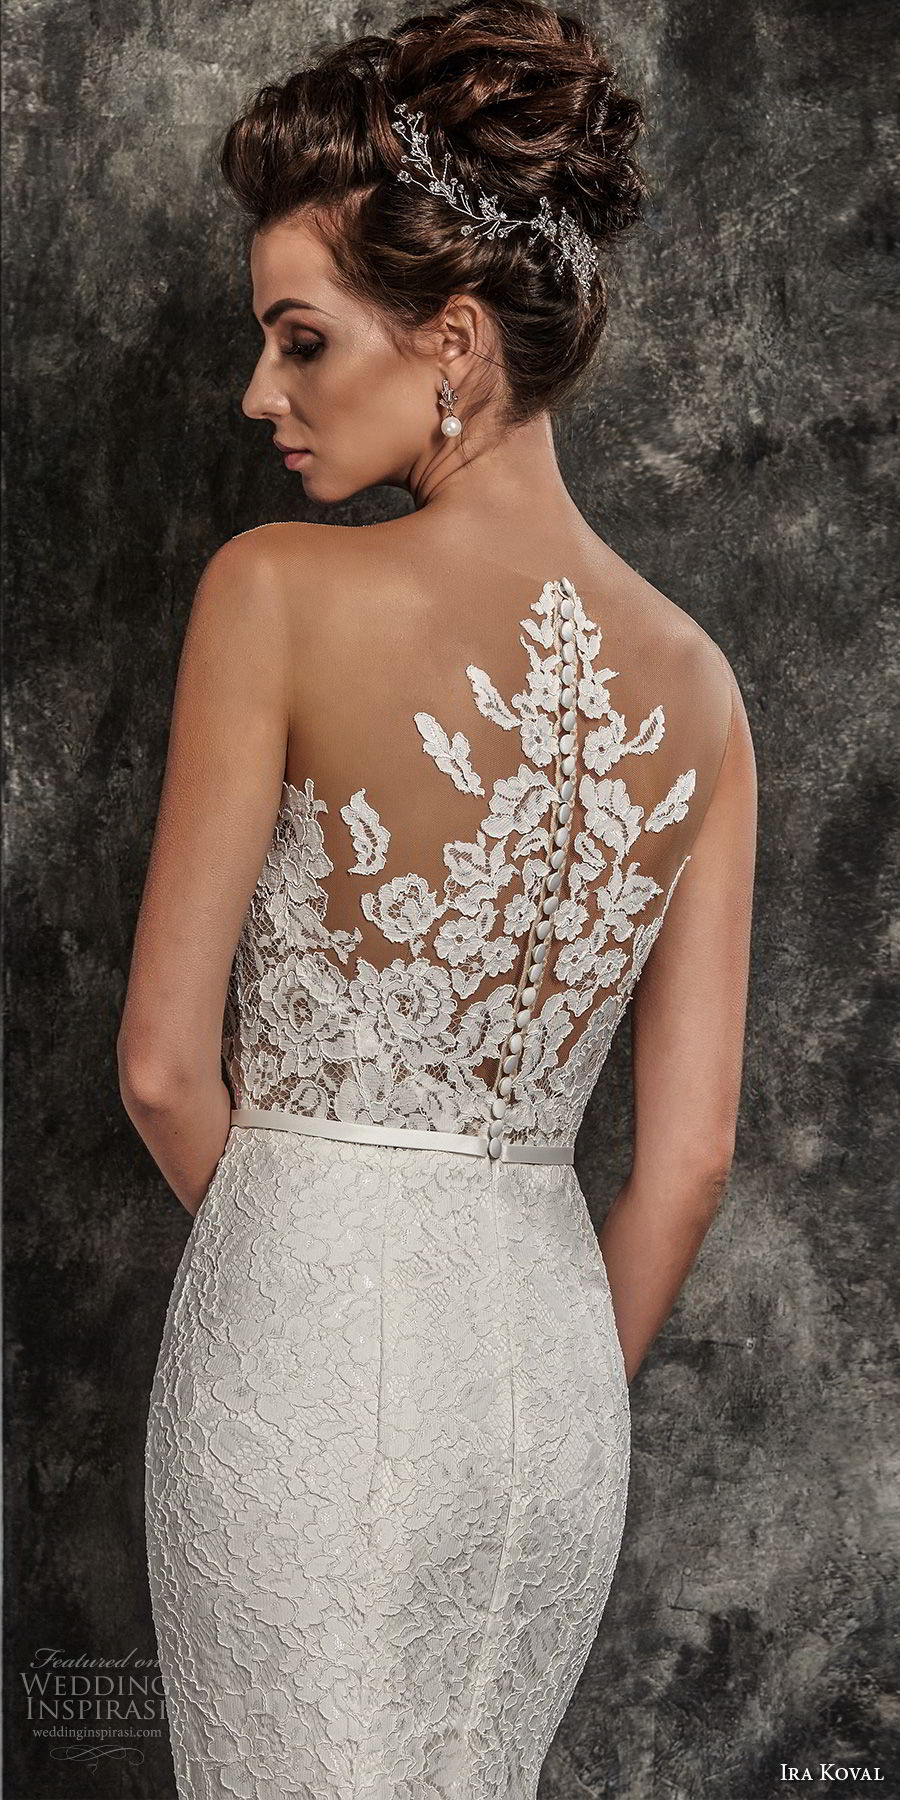 ira koval 2017 bridal sleeveless illusion bateau sweetheart neckline heavily embellished lace bodice elegant sheath fit and flare wedding dress rasor lace back sweep train (612) zbv